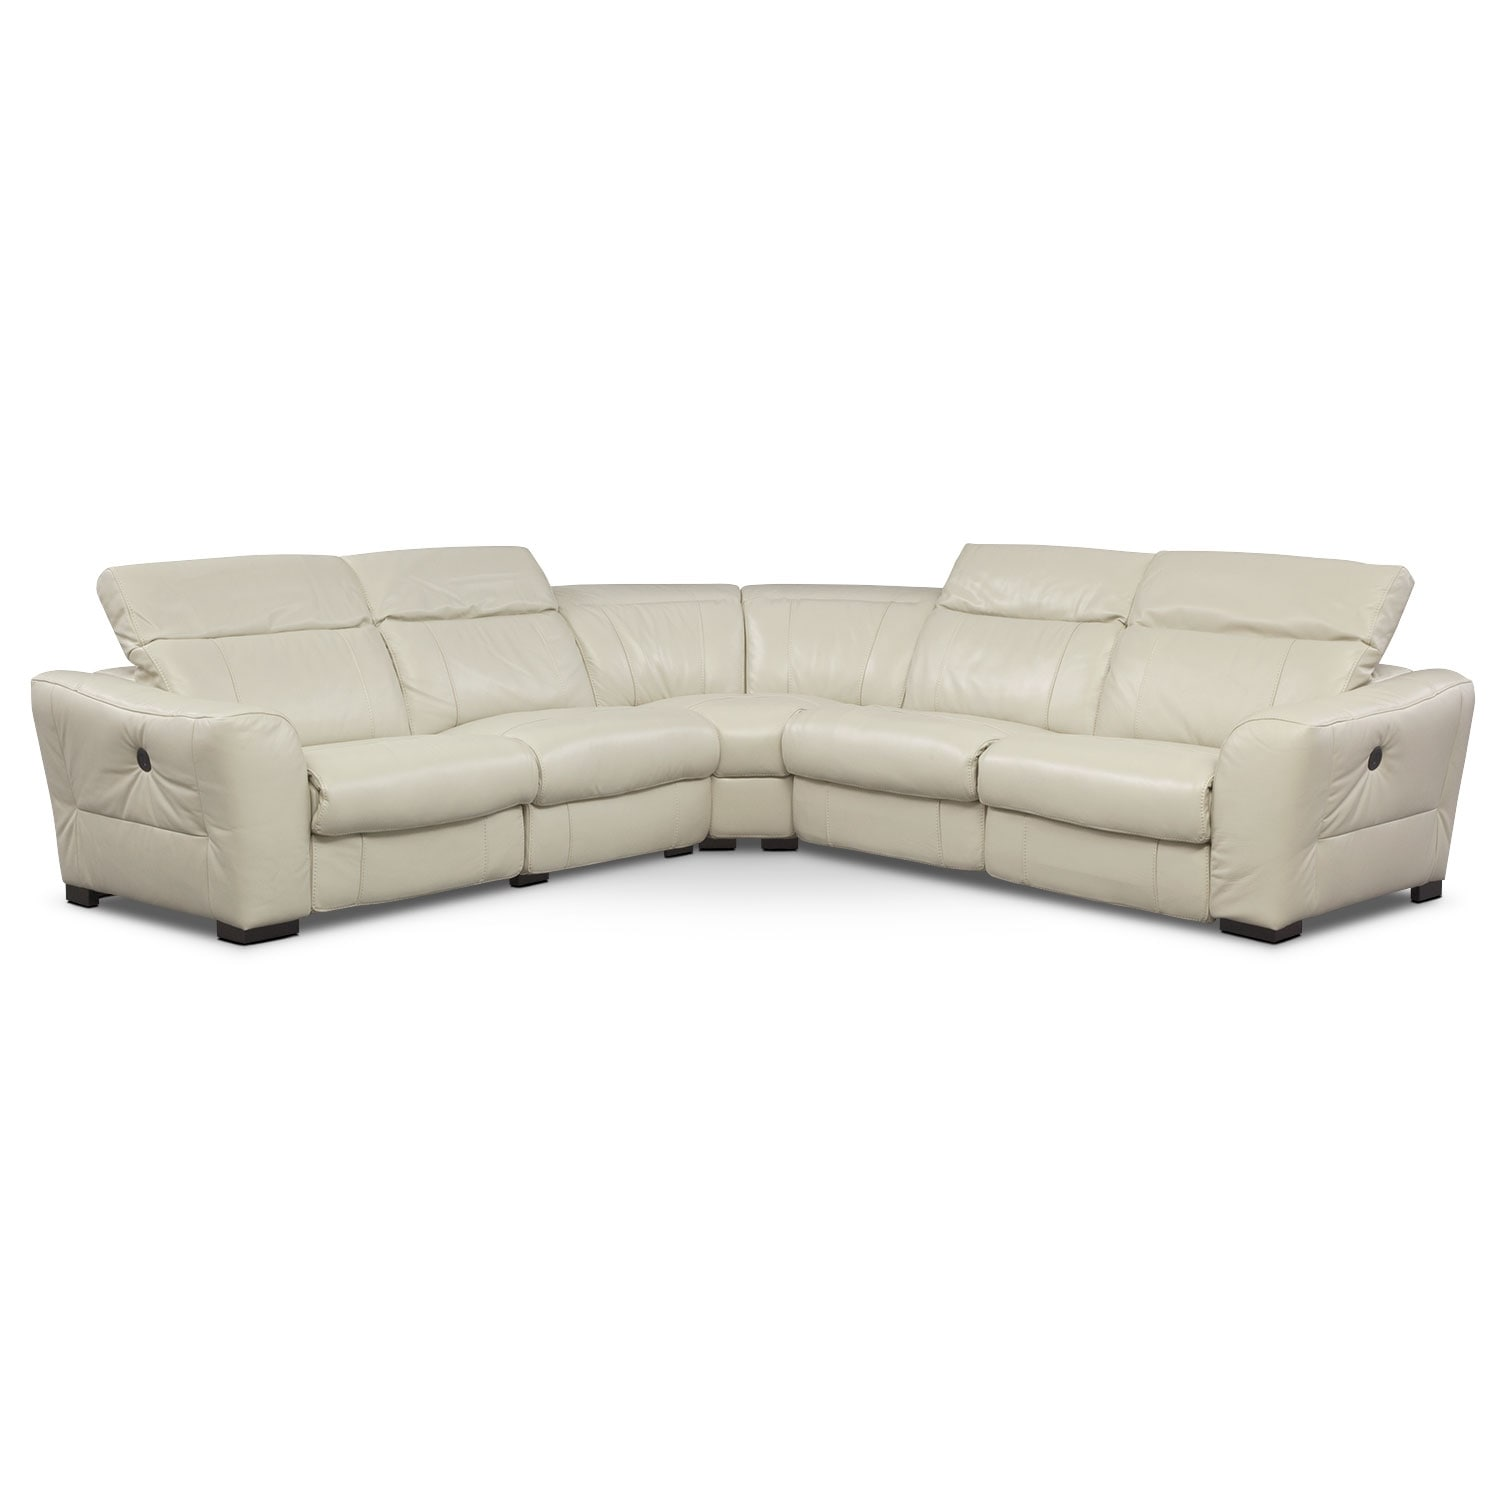 [Palisade Ivory 5 Pc. Sectional w/ 2 Power Reclining Seats]